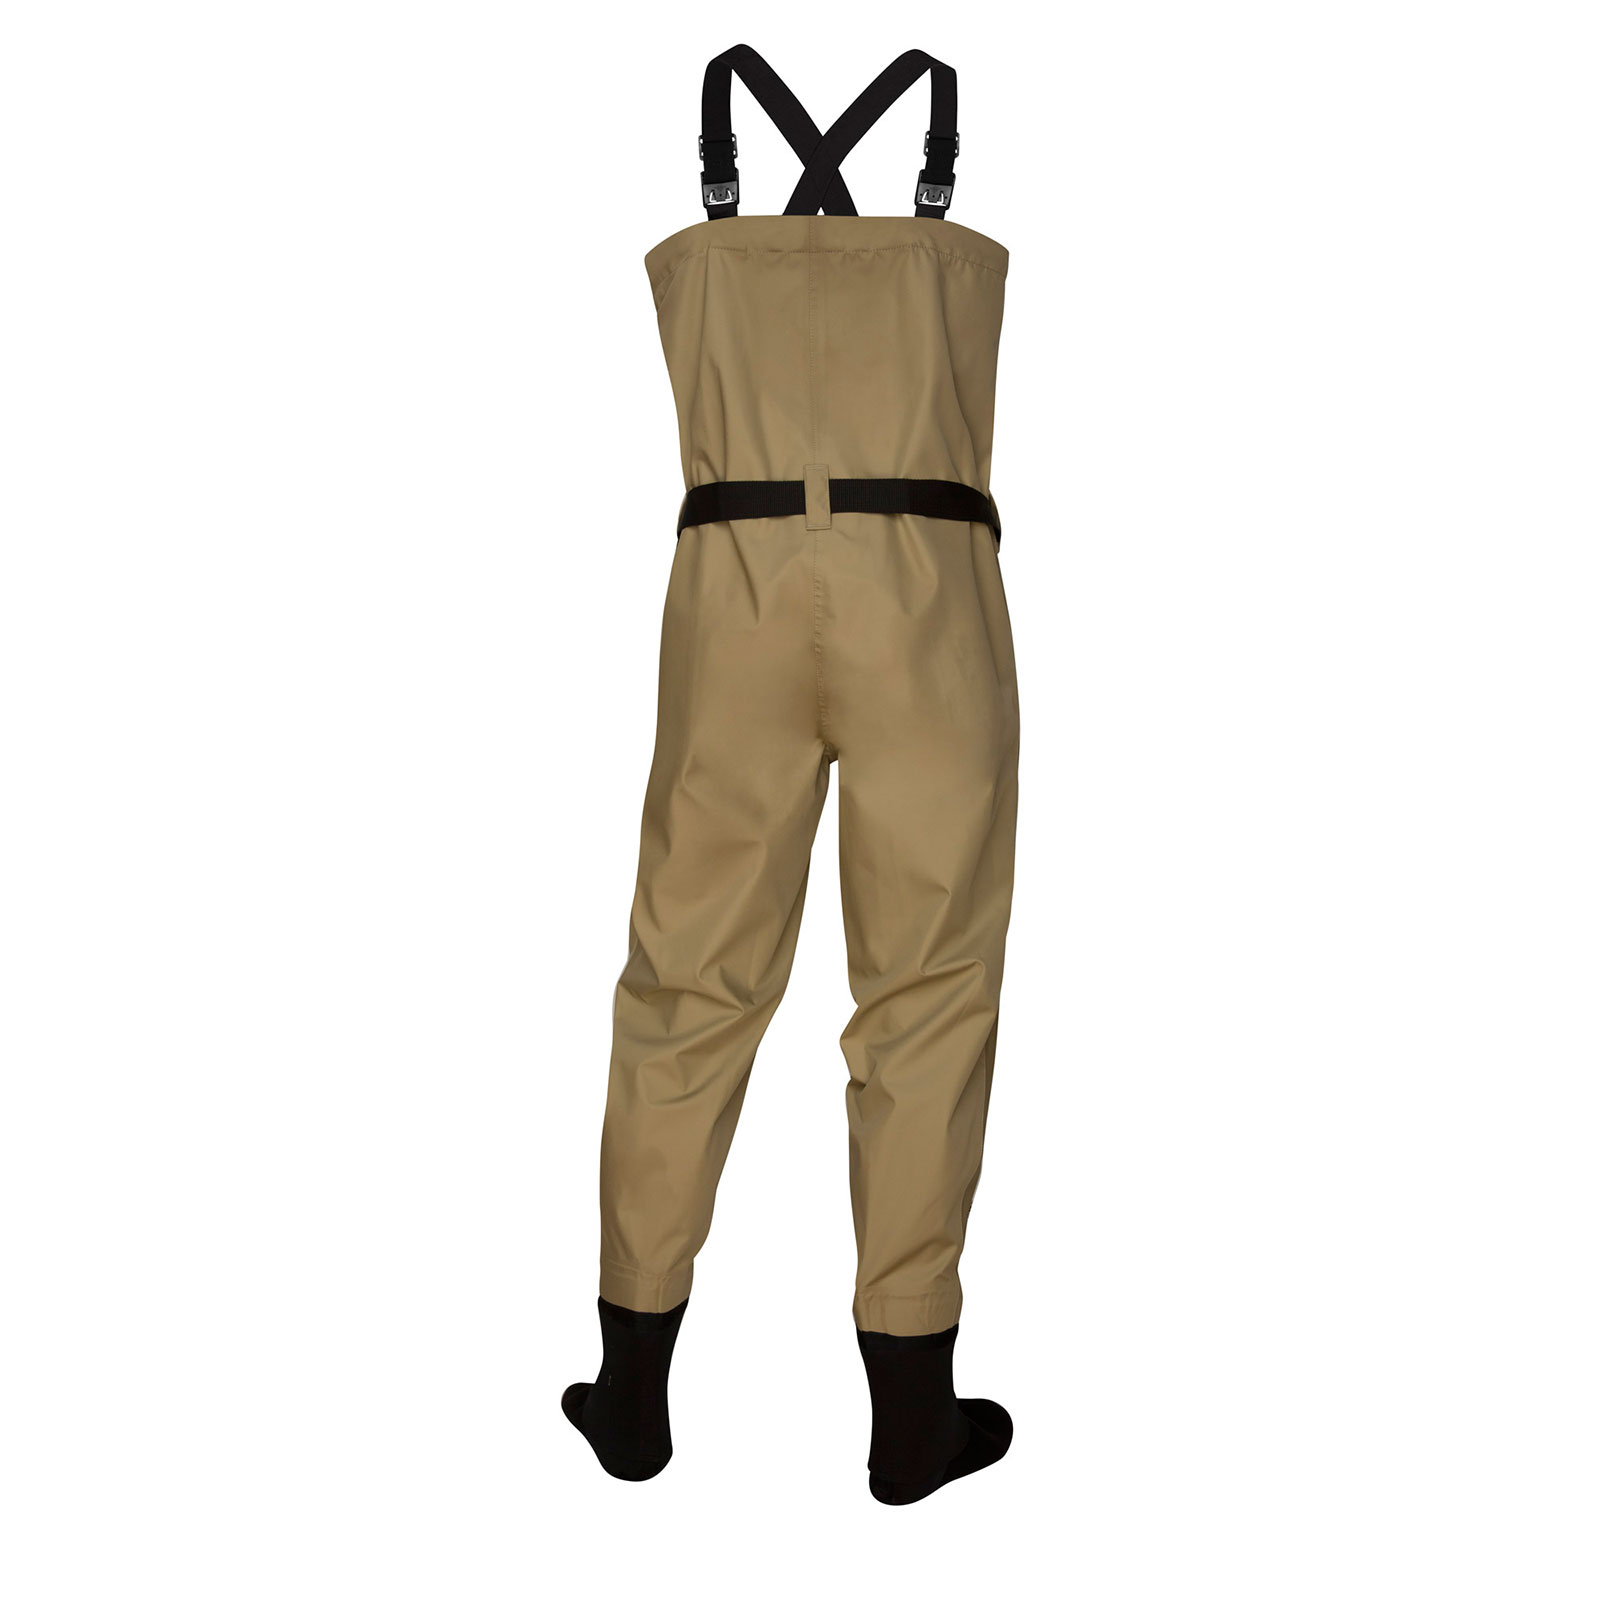 Redington crosswater youth fly fishing stockingfoot waders for Fly fishing waders reviews